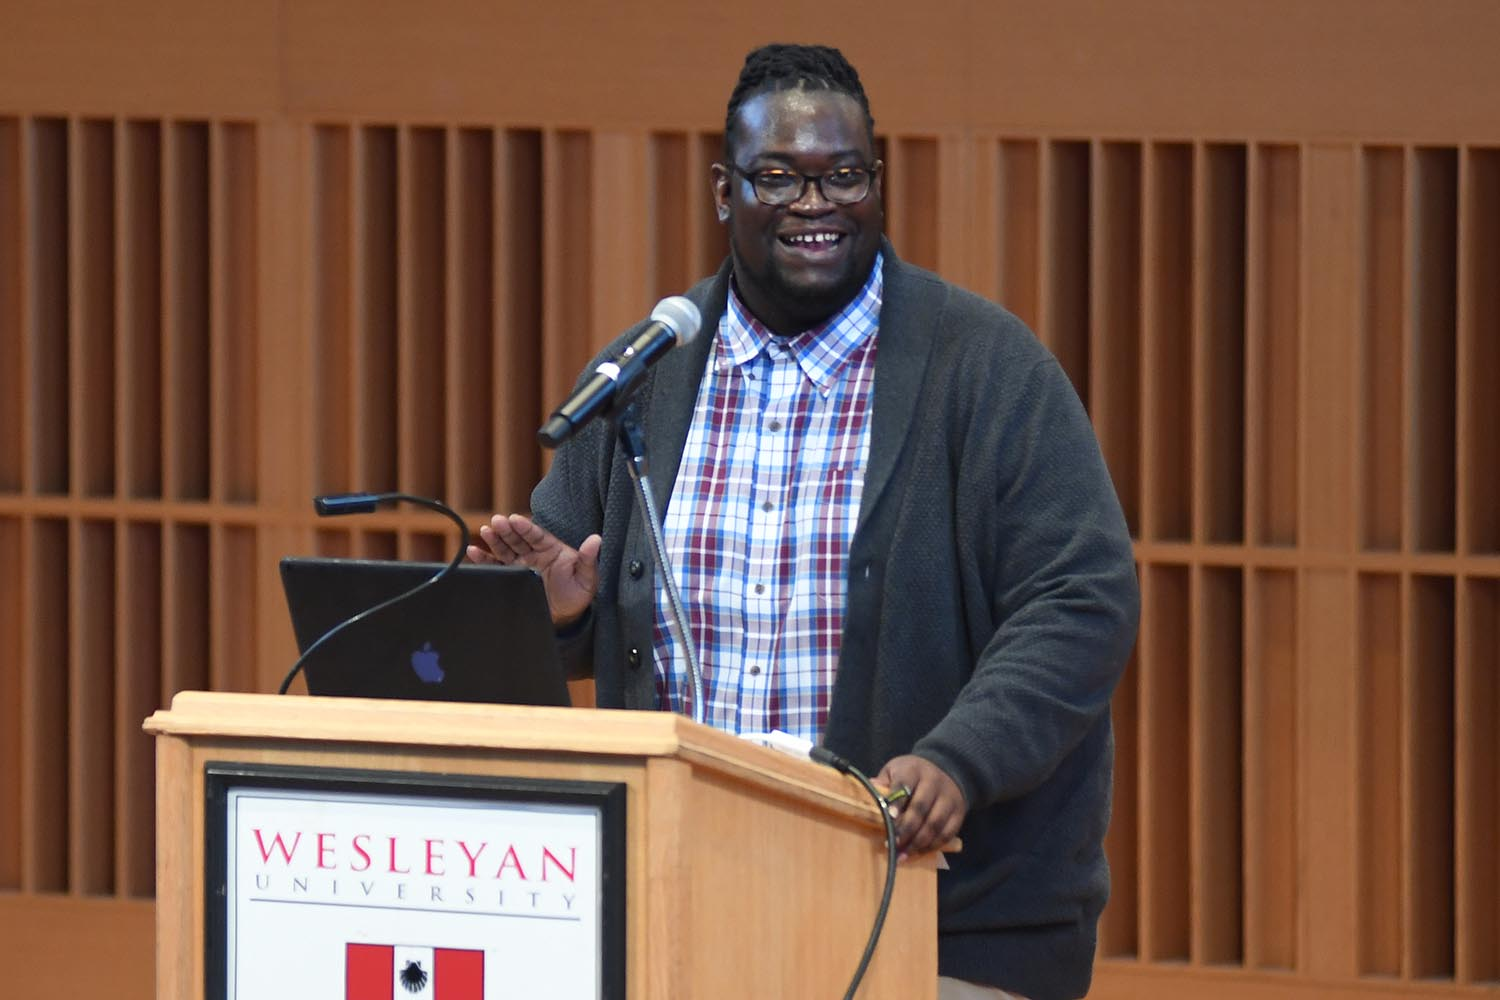 Demetrius Colvin, director of Wesleyan's Resource Center, welcomed the audience on behalf of the MLK Commemoration Committee. Colvin is the chair of the committee.